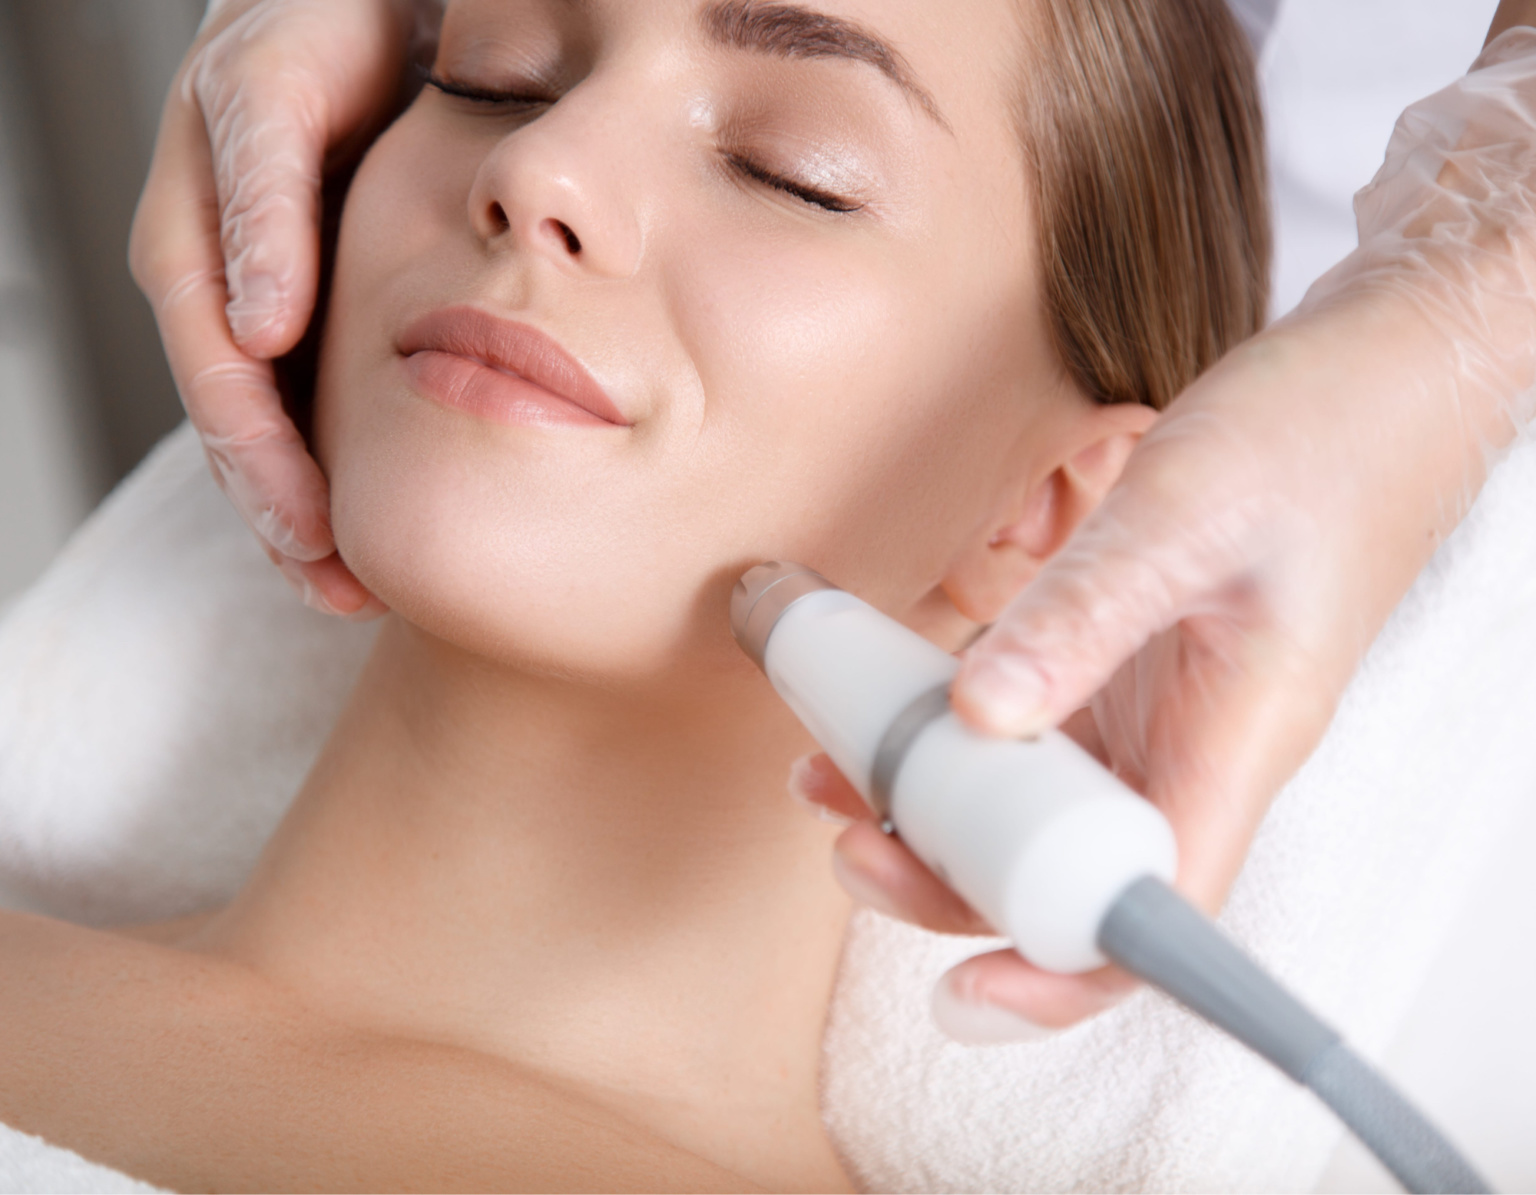 Microdermabrasion and Aesthetics Courses: An Overview